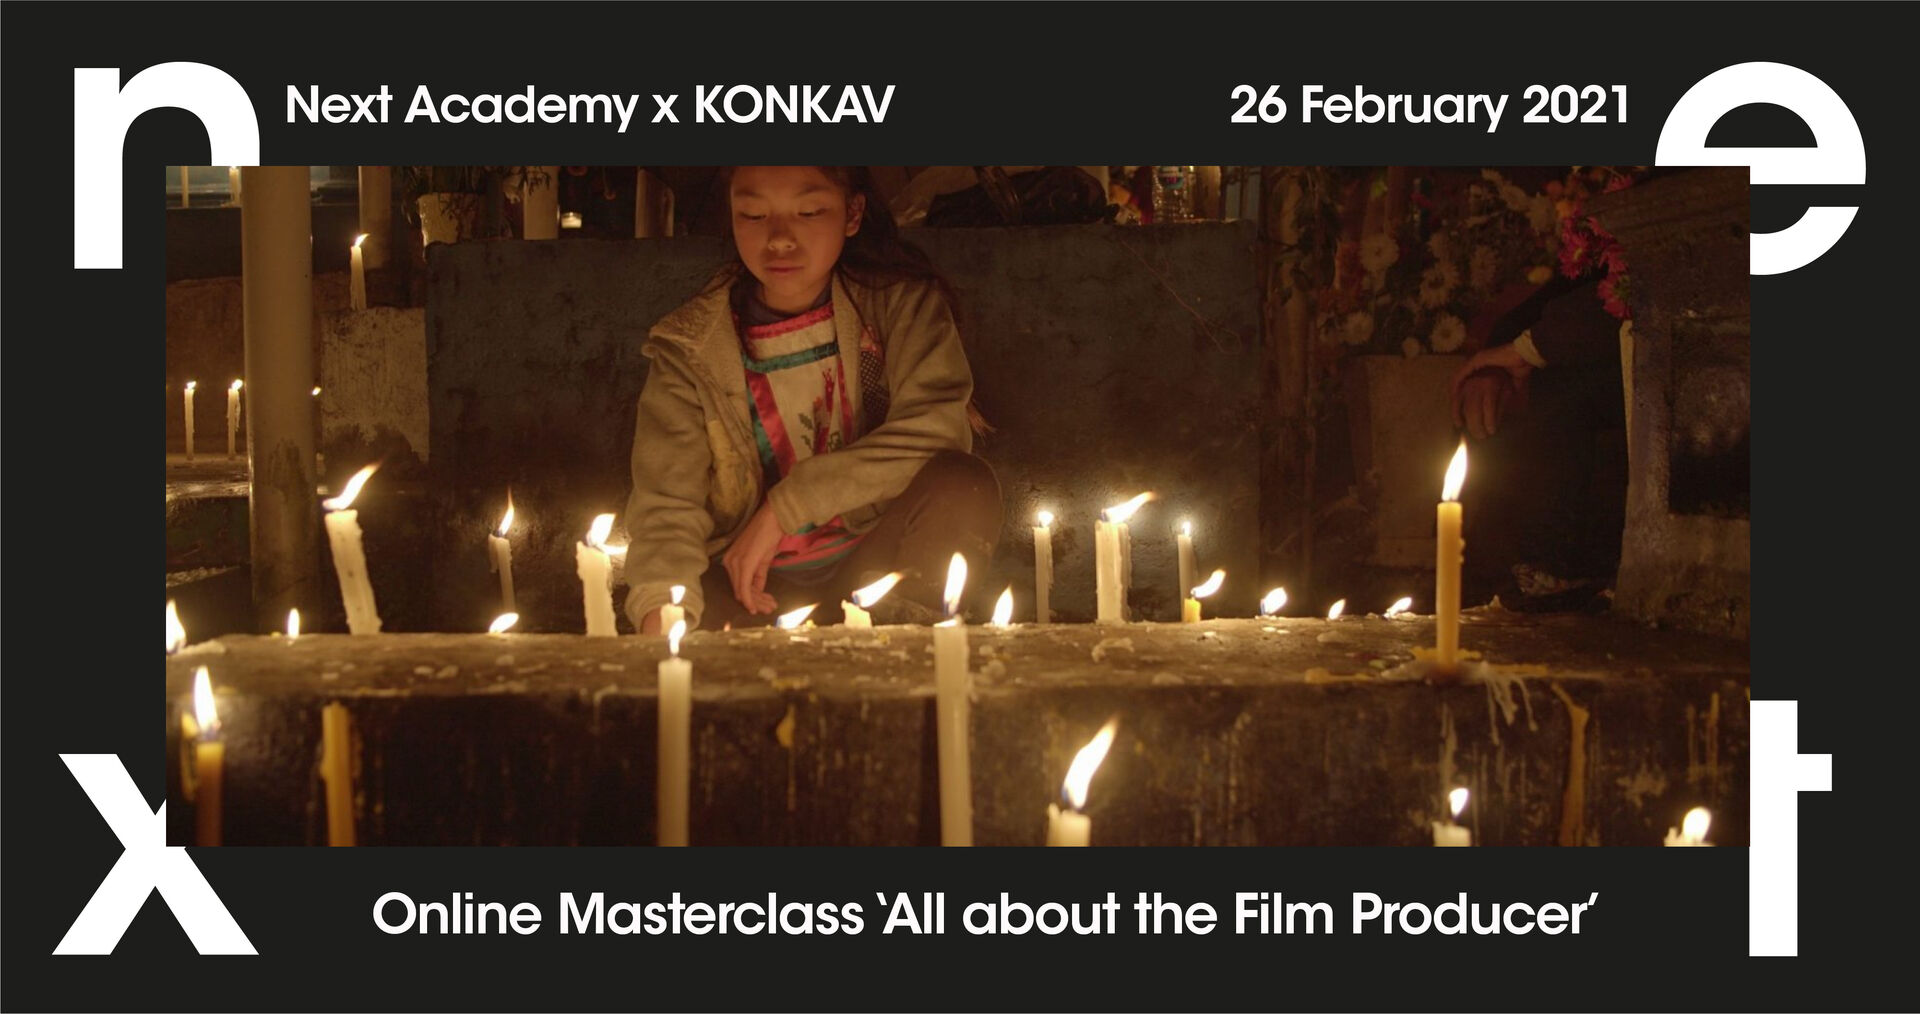 Online masterclass 'All about the Film Producer'